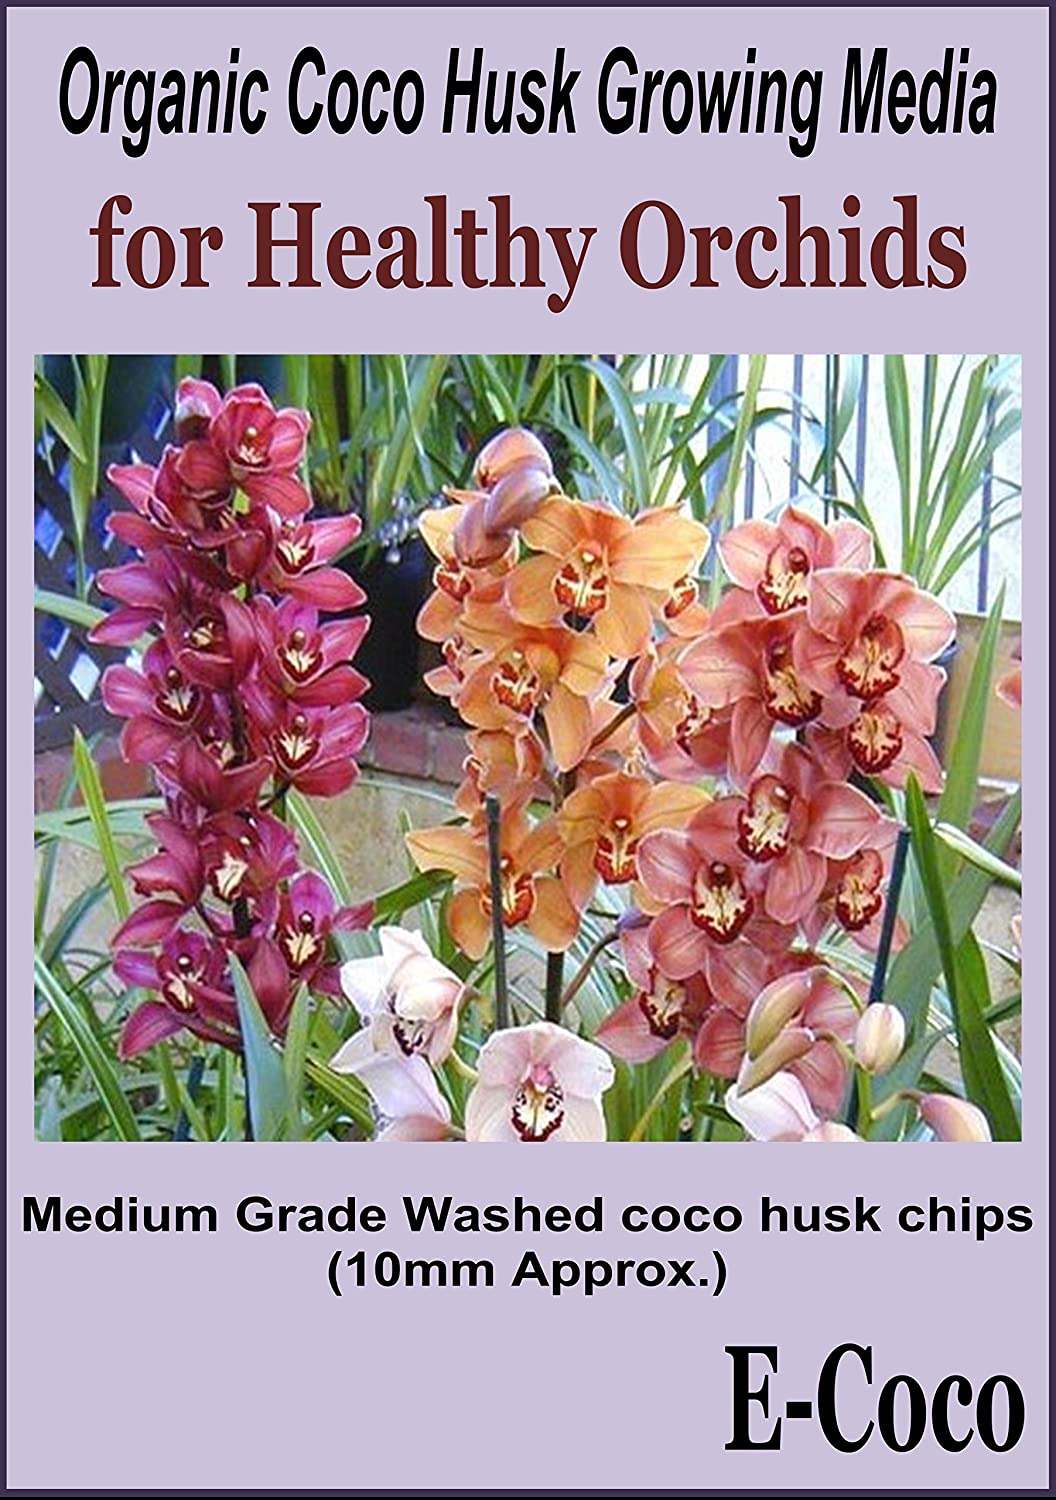 ORCHID COMPOST MEDIUM GRADE SS COCONUT HUSK CHIPS READY TO USE (1 LITRE) E-COCO PRODUCTS UK